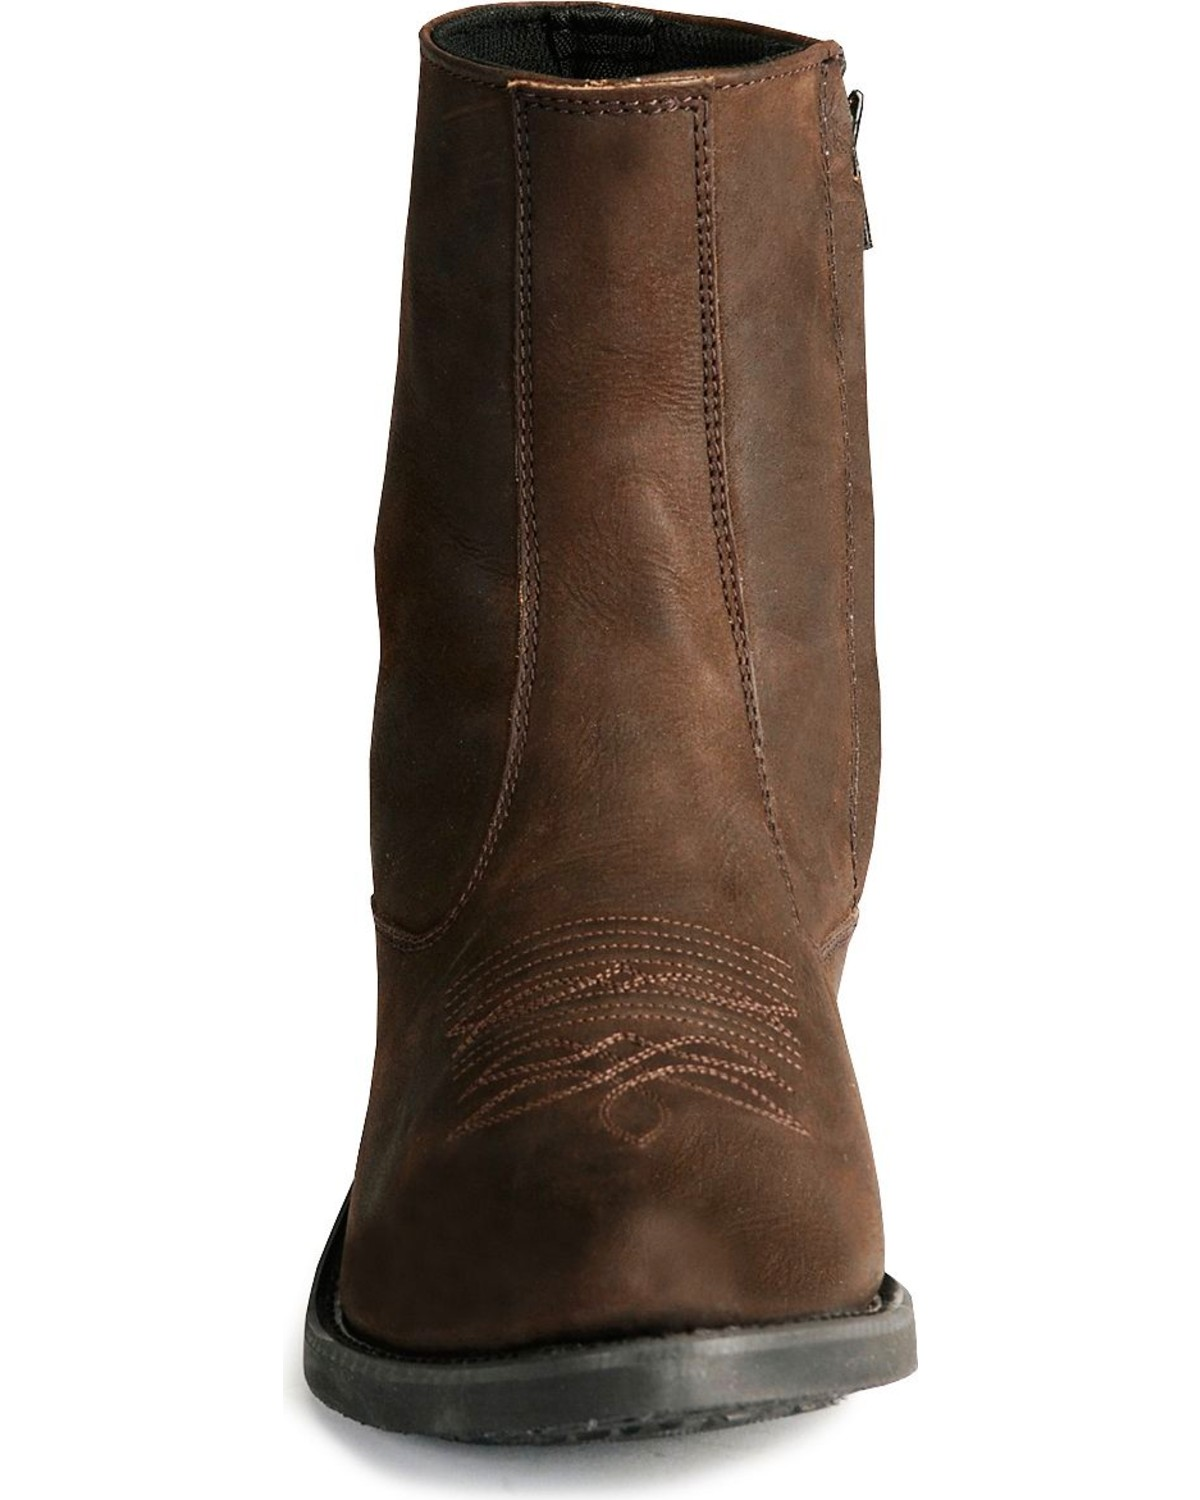 Old West Boots Zippered Ankle Boot 7cnFn